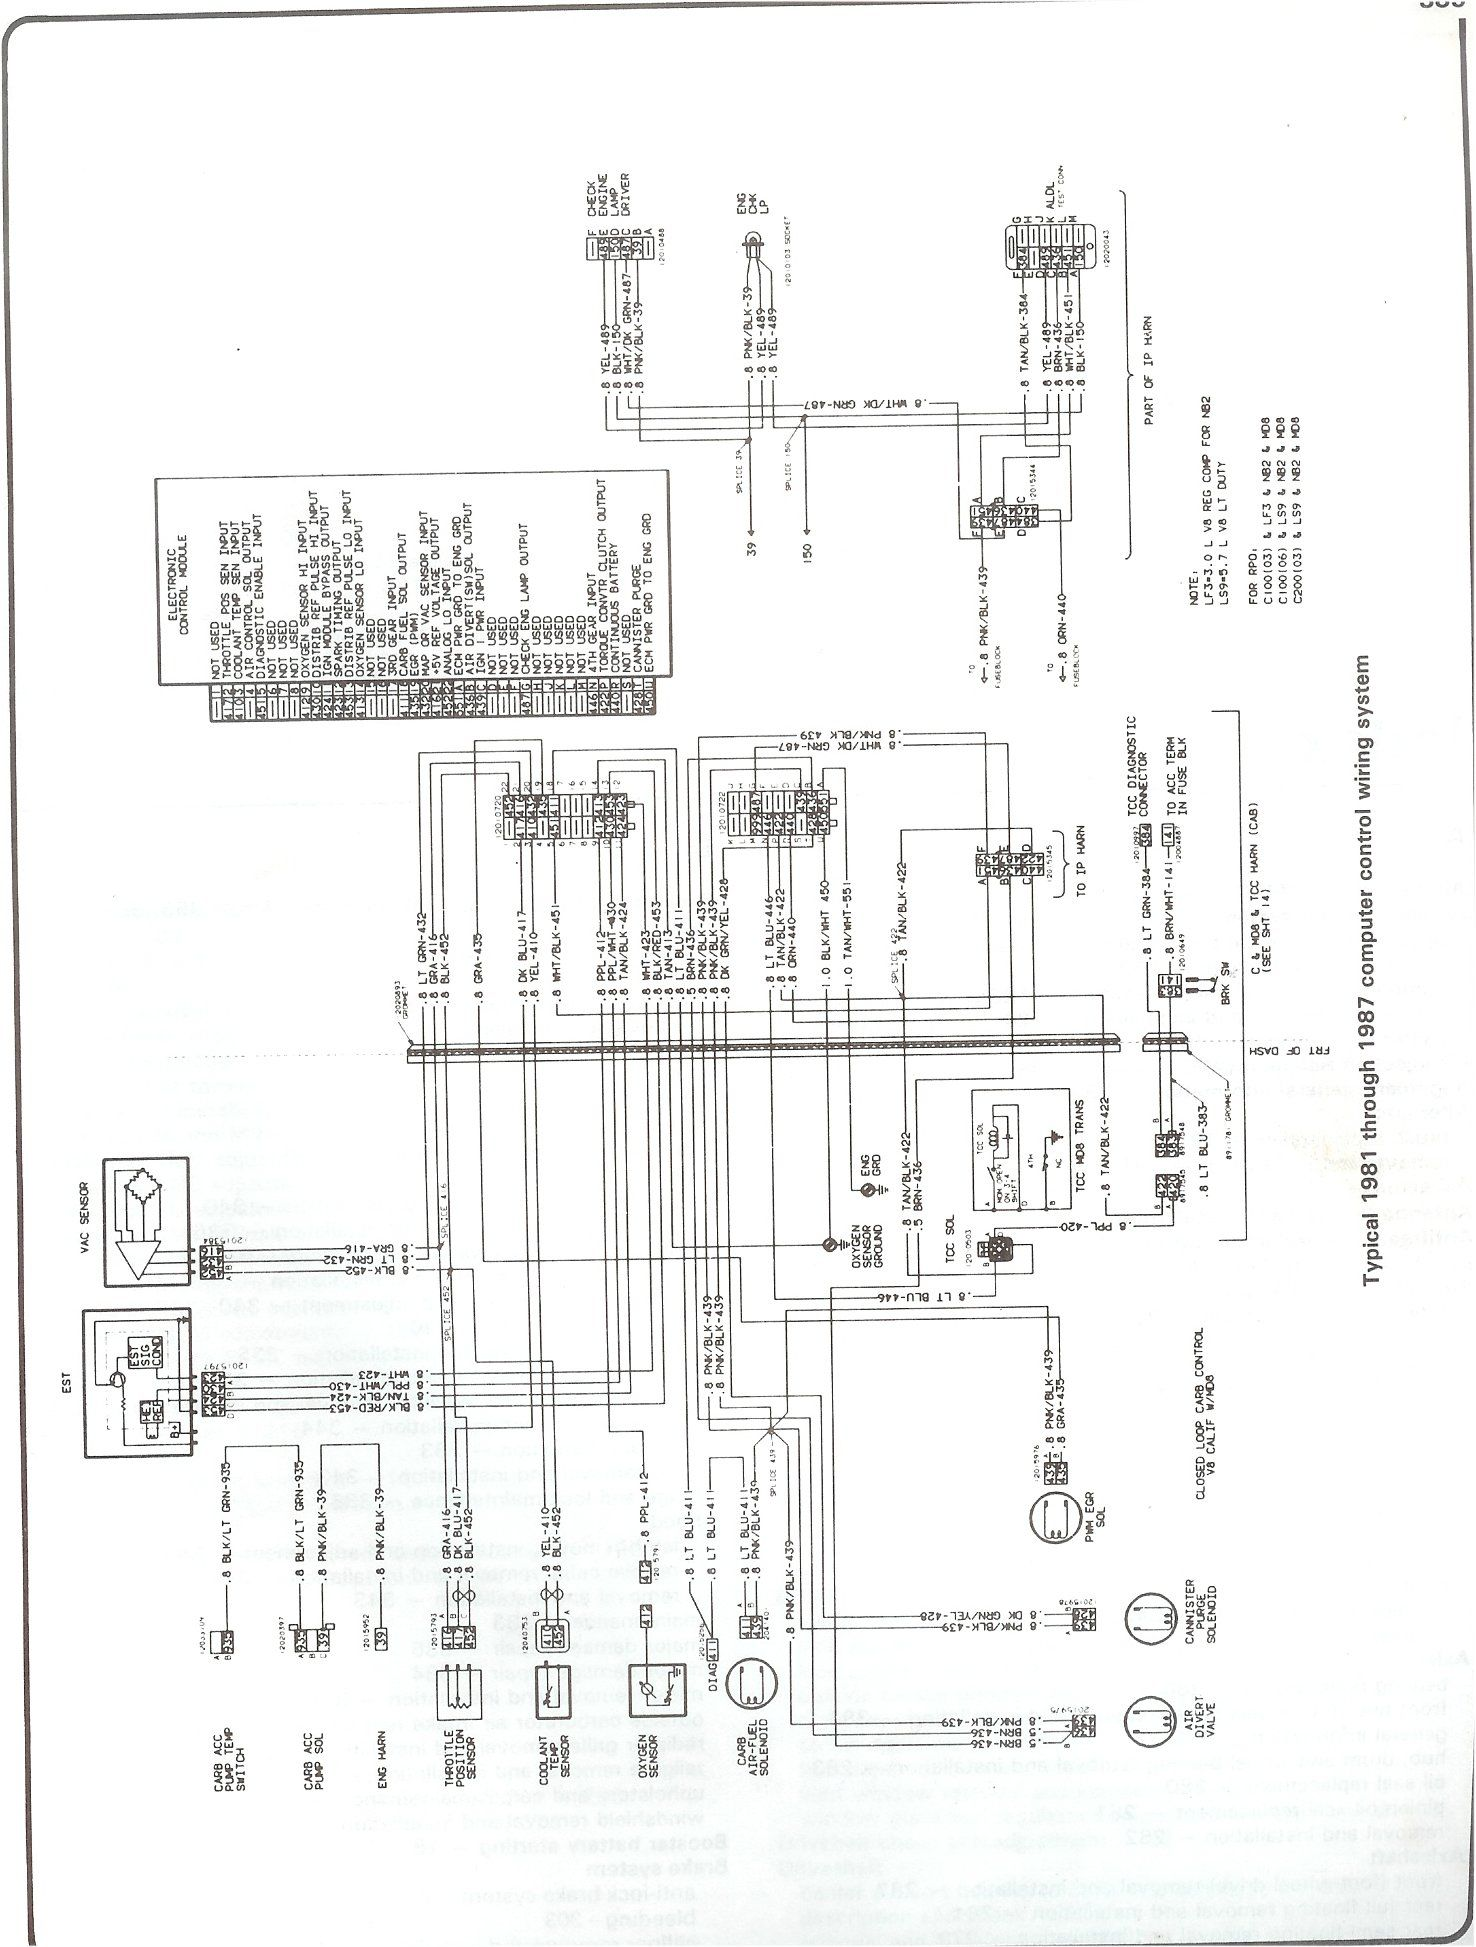 1936 Chevy Truck Wiring Diagram 240 Volt Pressure Switch Parts For To 1987 Chevrolet And Gmc